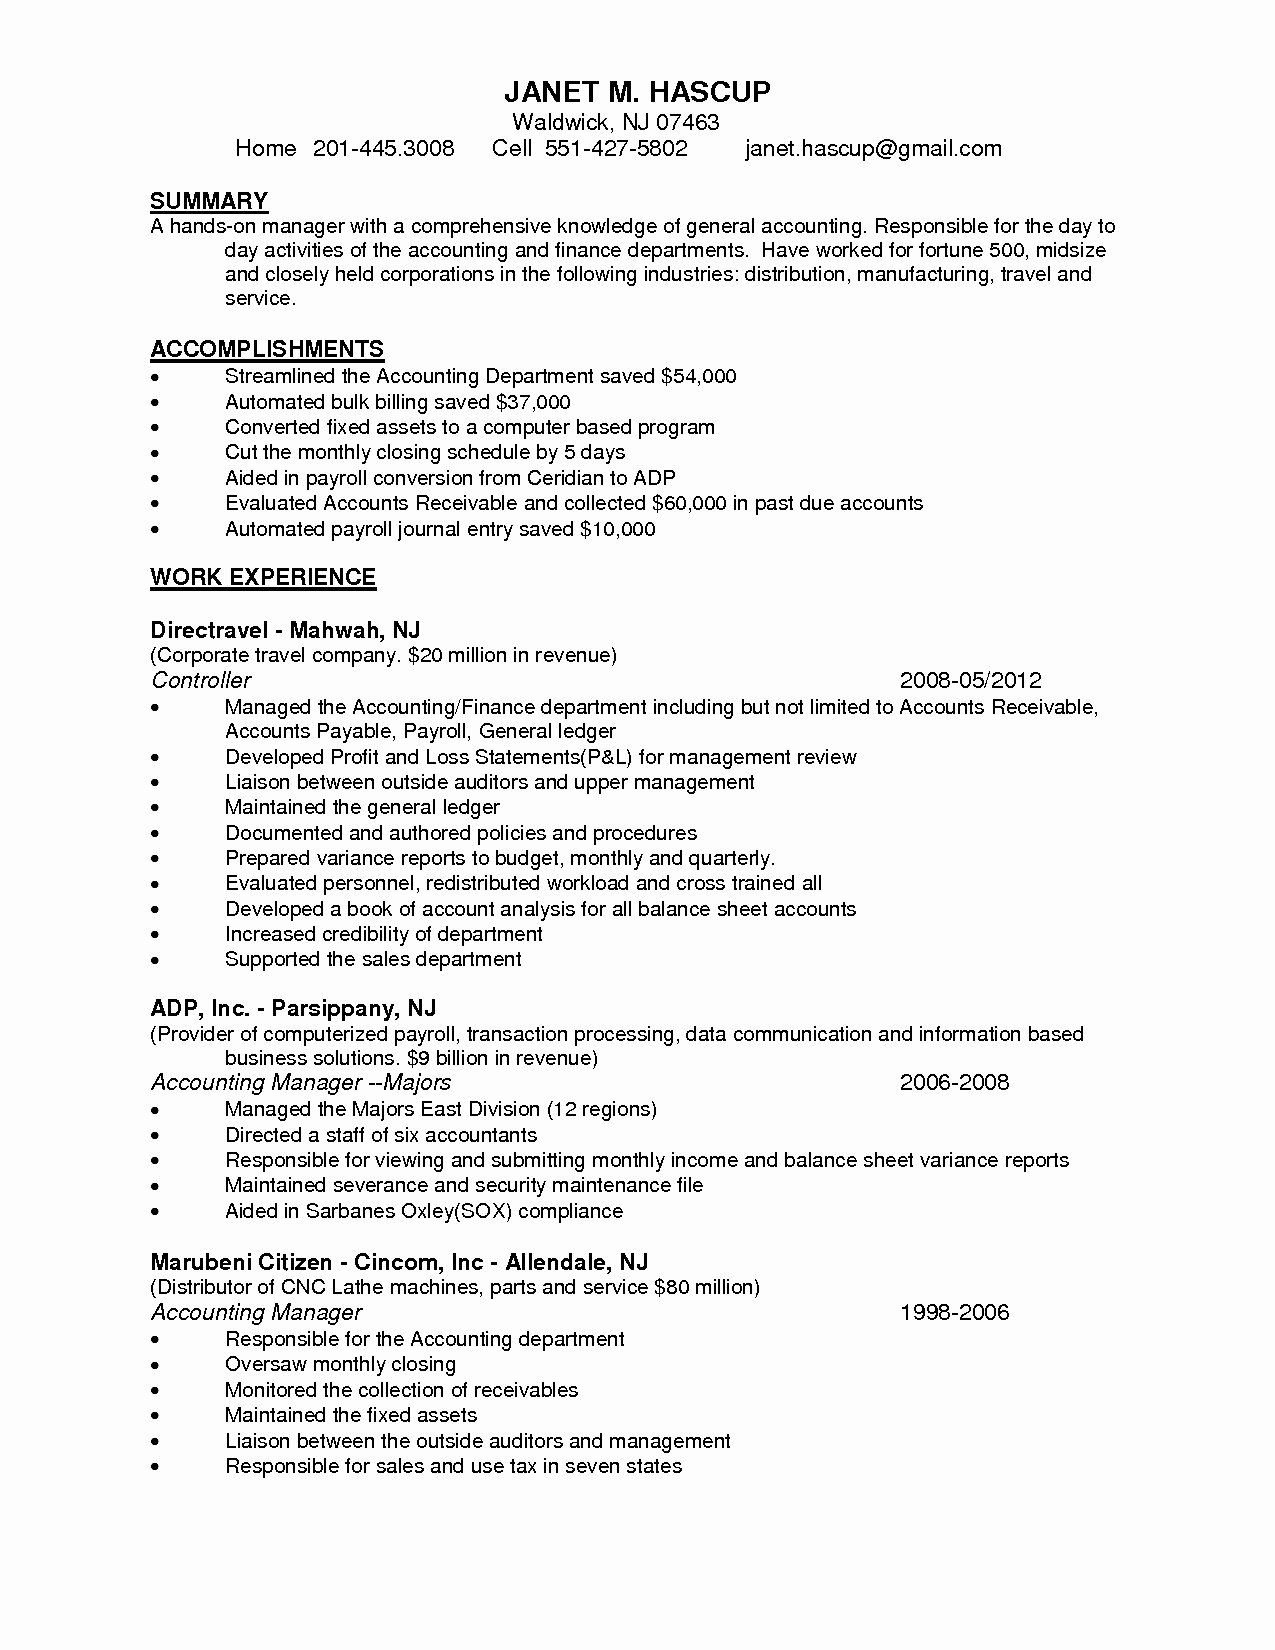 23 accounts receivables resume examples in 2020 high school student for college best technical example ojt business administration students